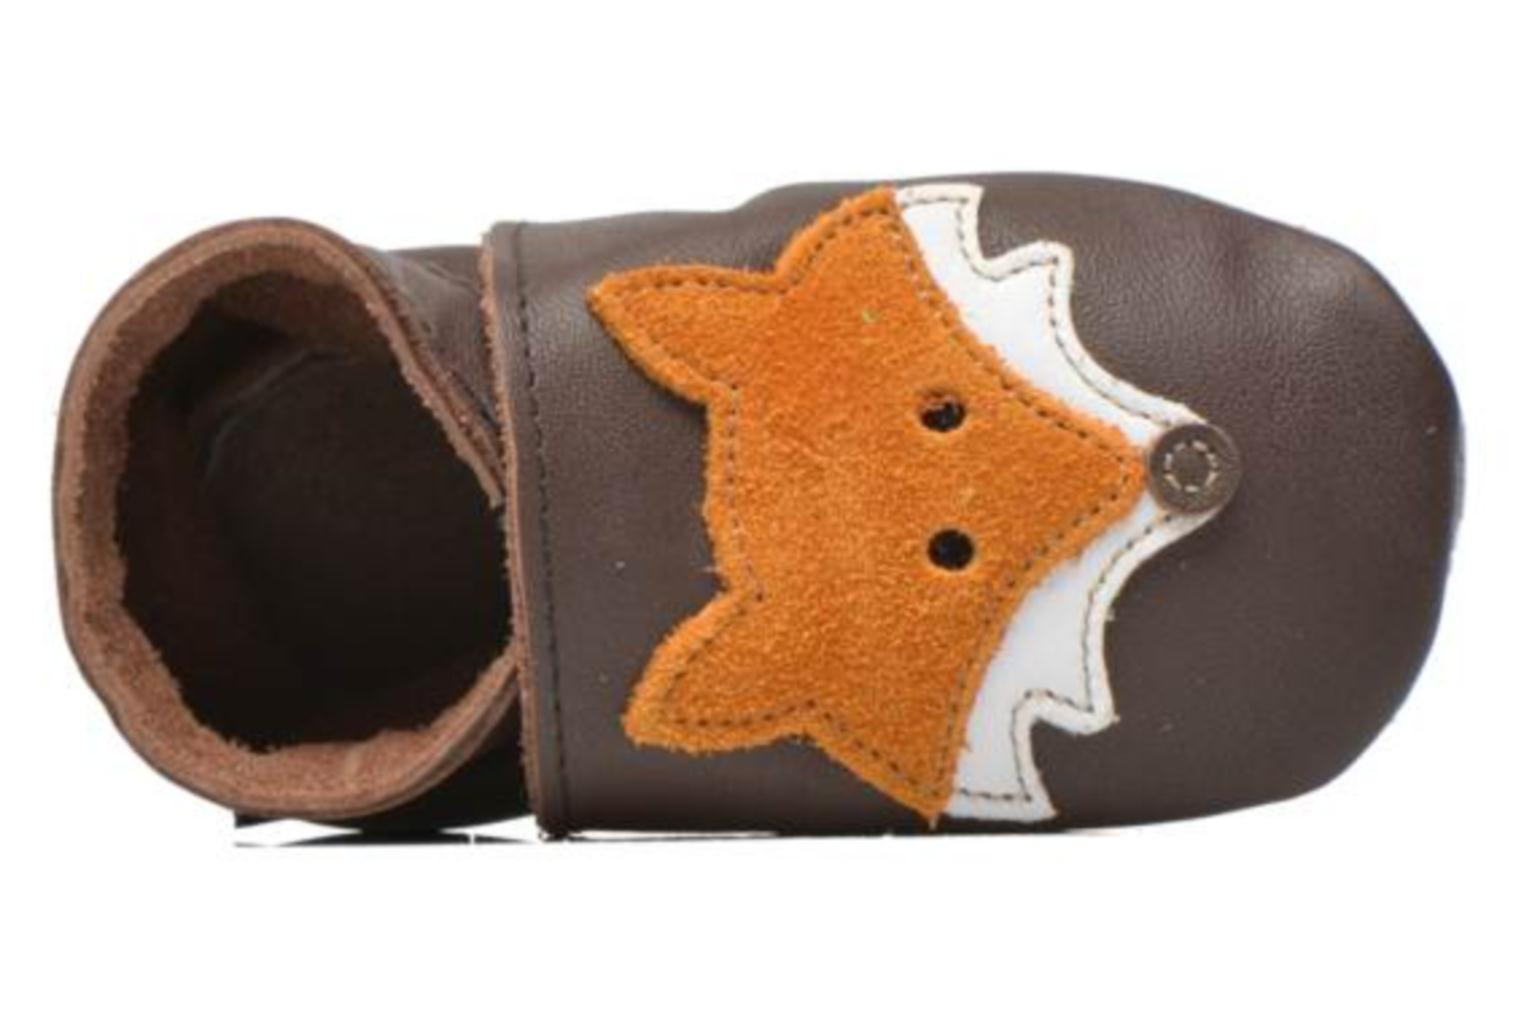 Chaussons Inch Blue Mr Fox Marron vue gauche